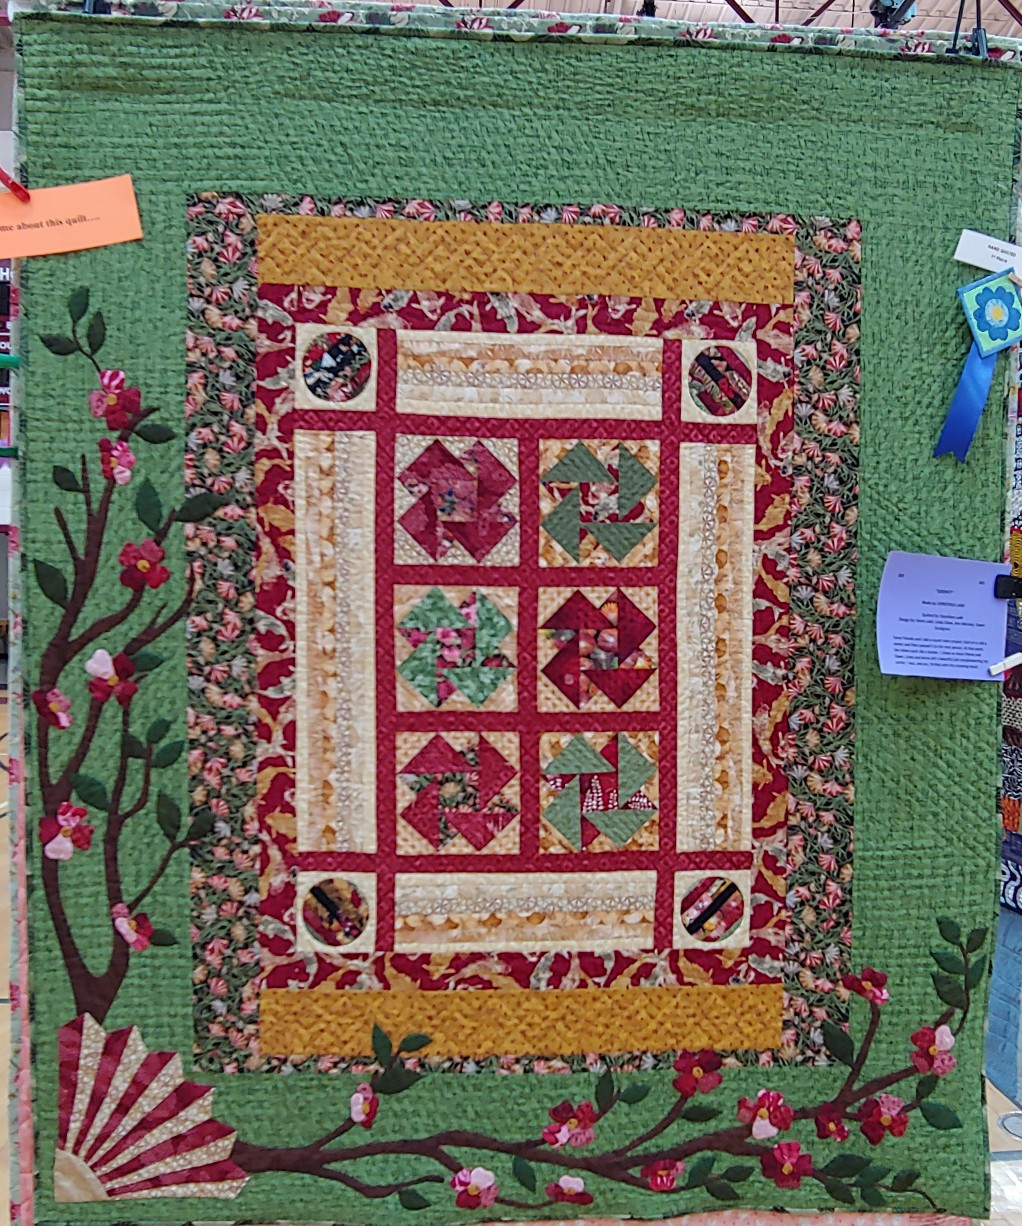 1st Prize Hand Quilted